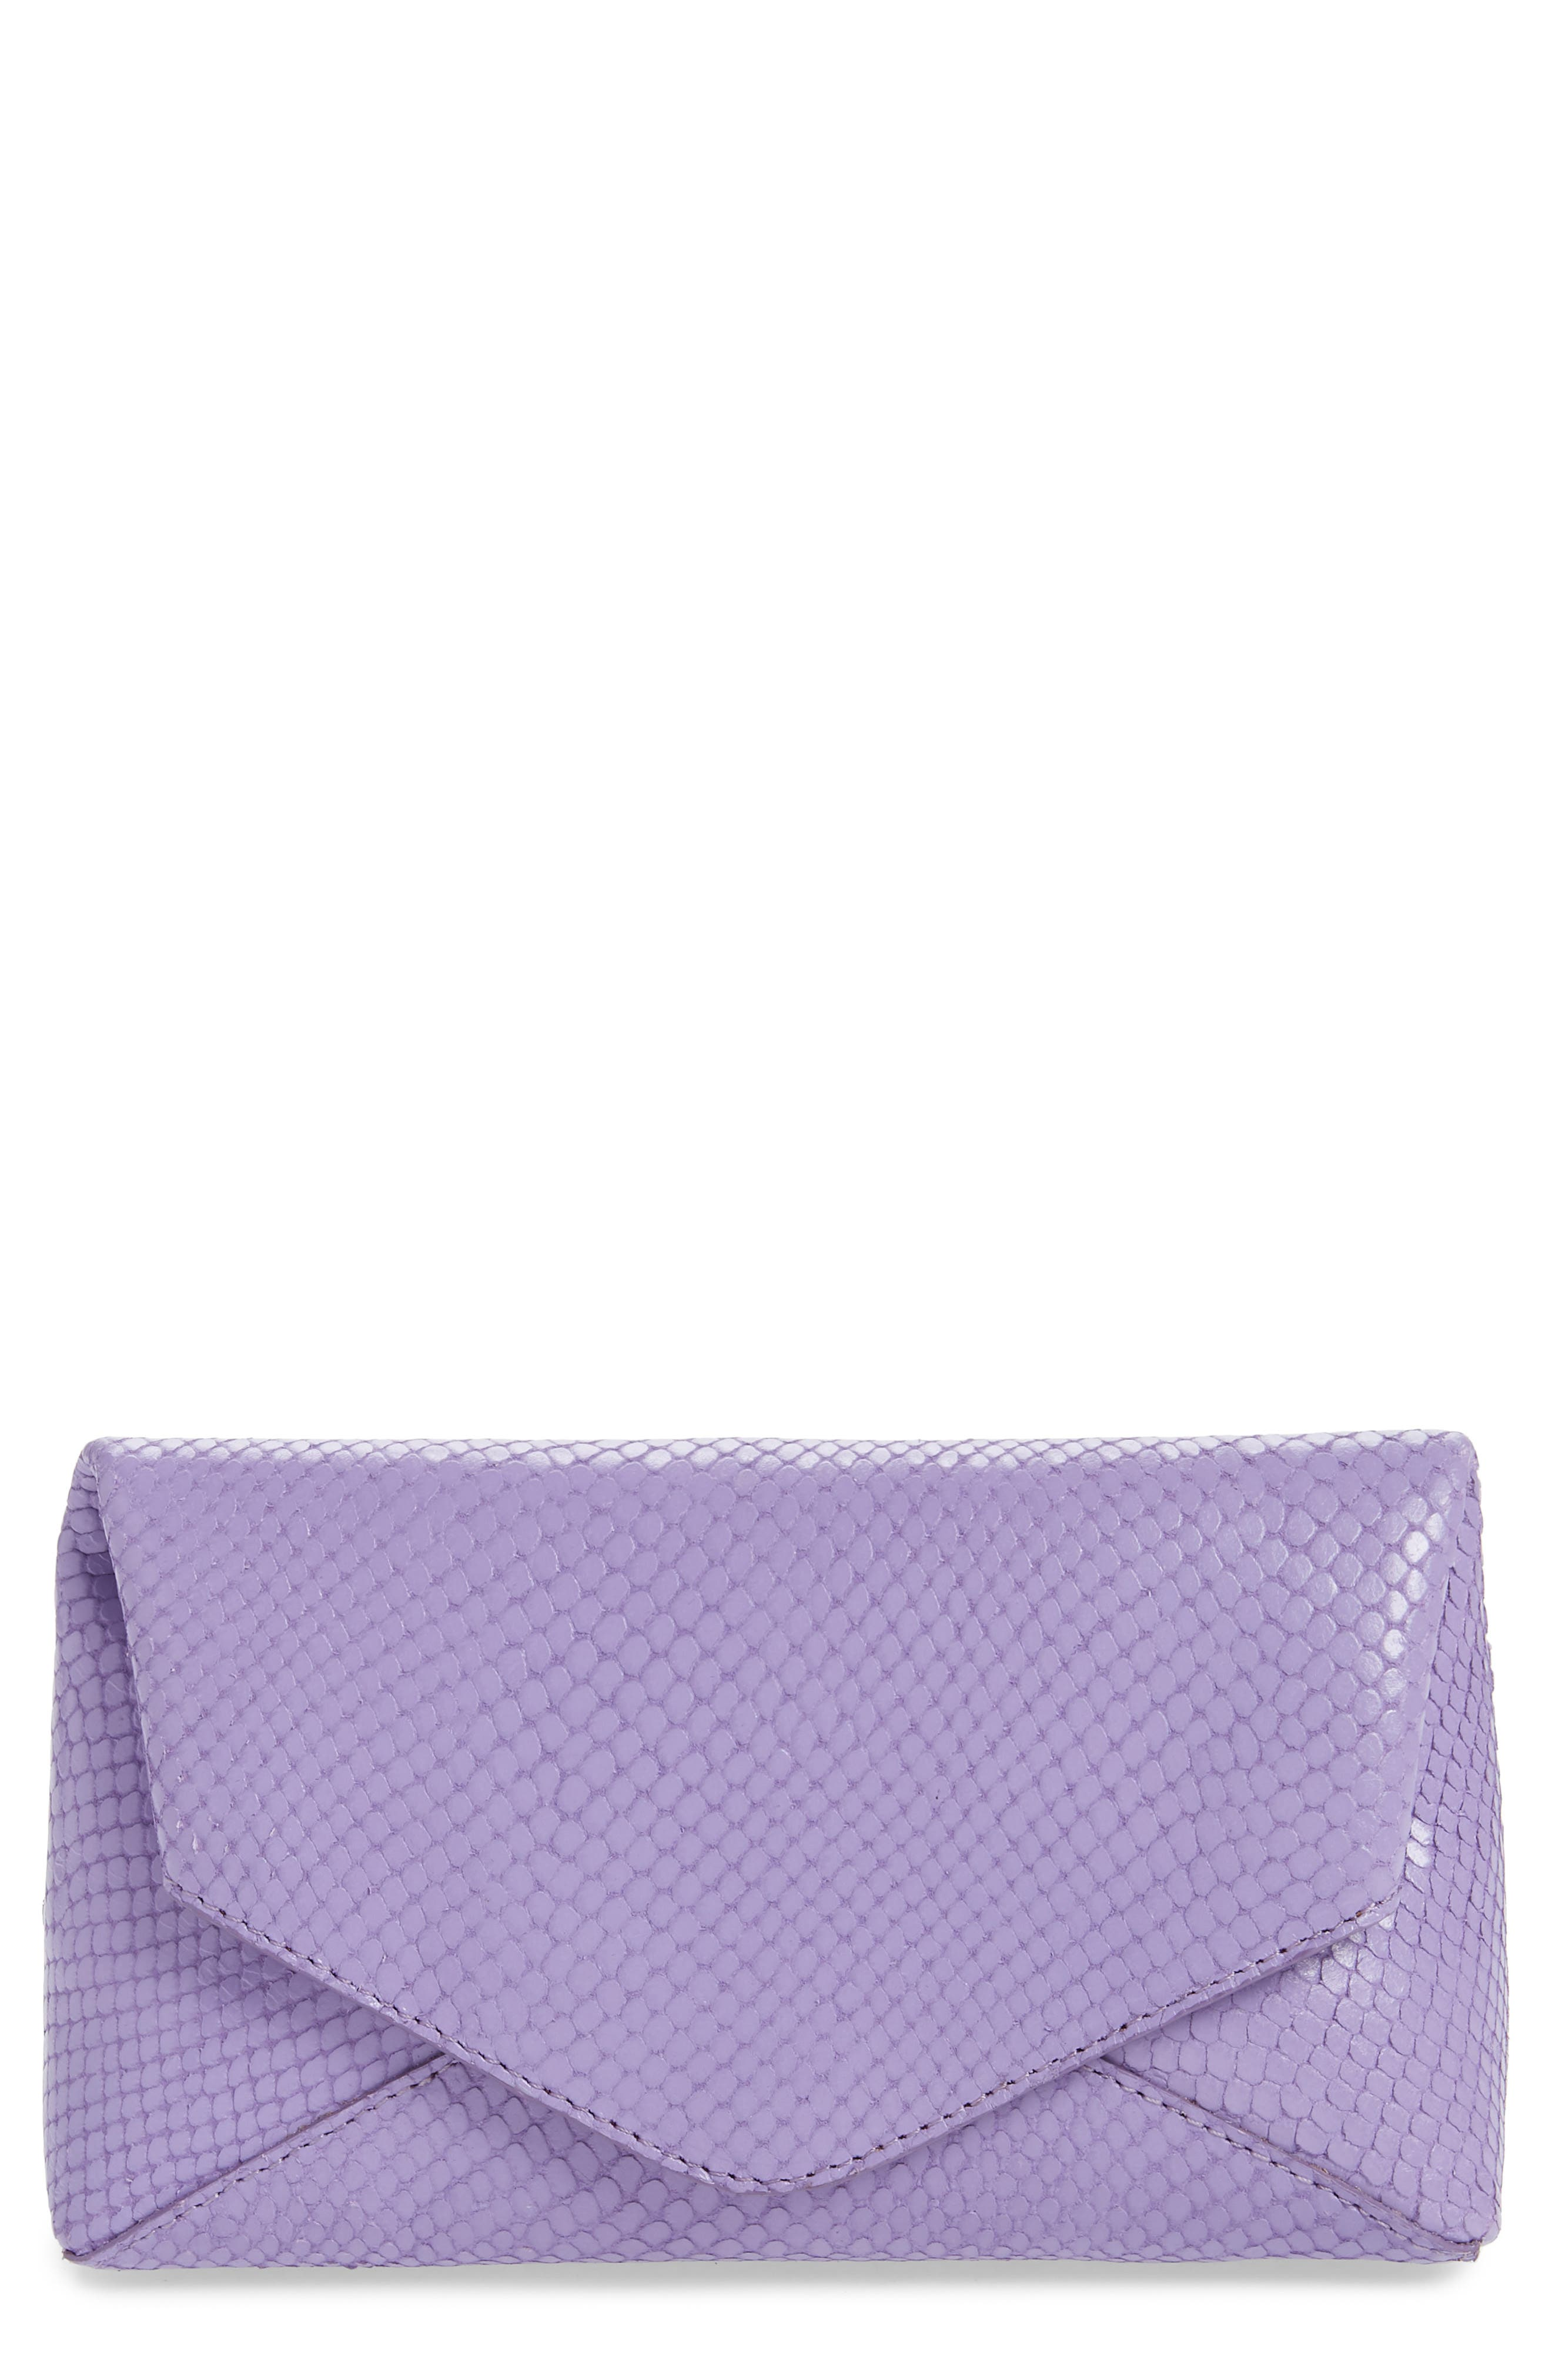 DRIES VAN NOTEN, Small Python Embossed Leather Envelope Clutch, Main thumbnail 1, color, LILAC